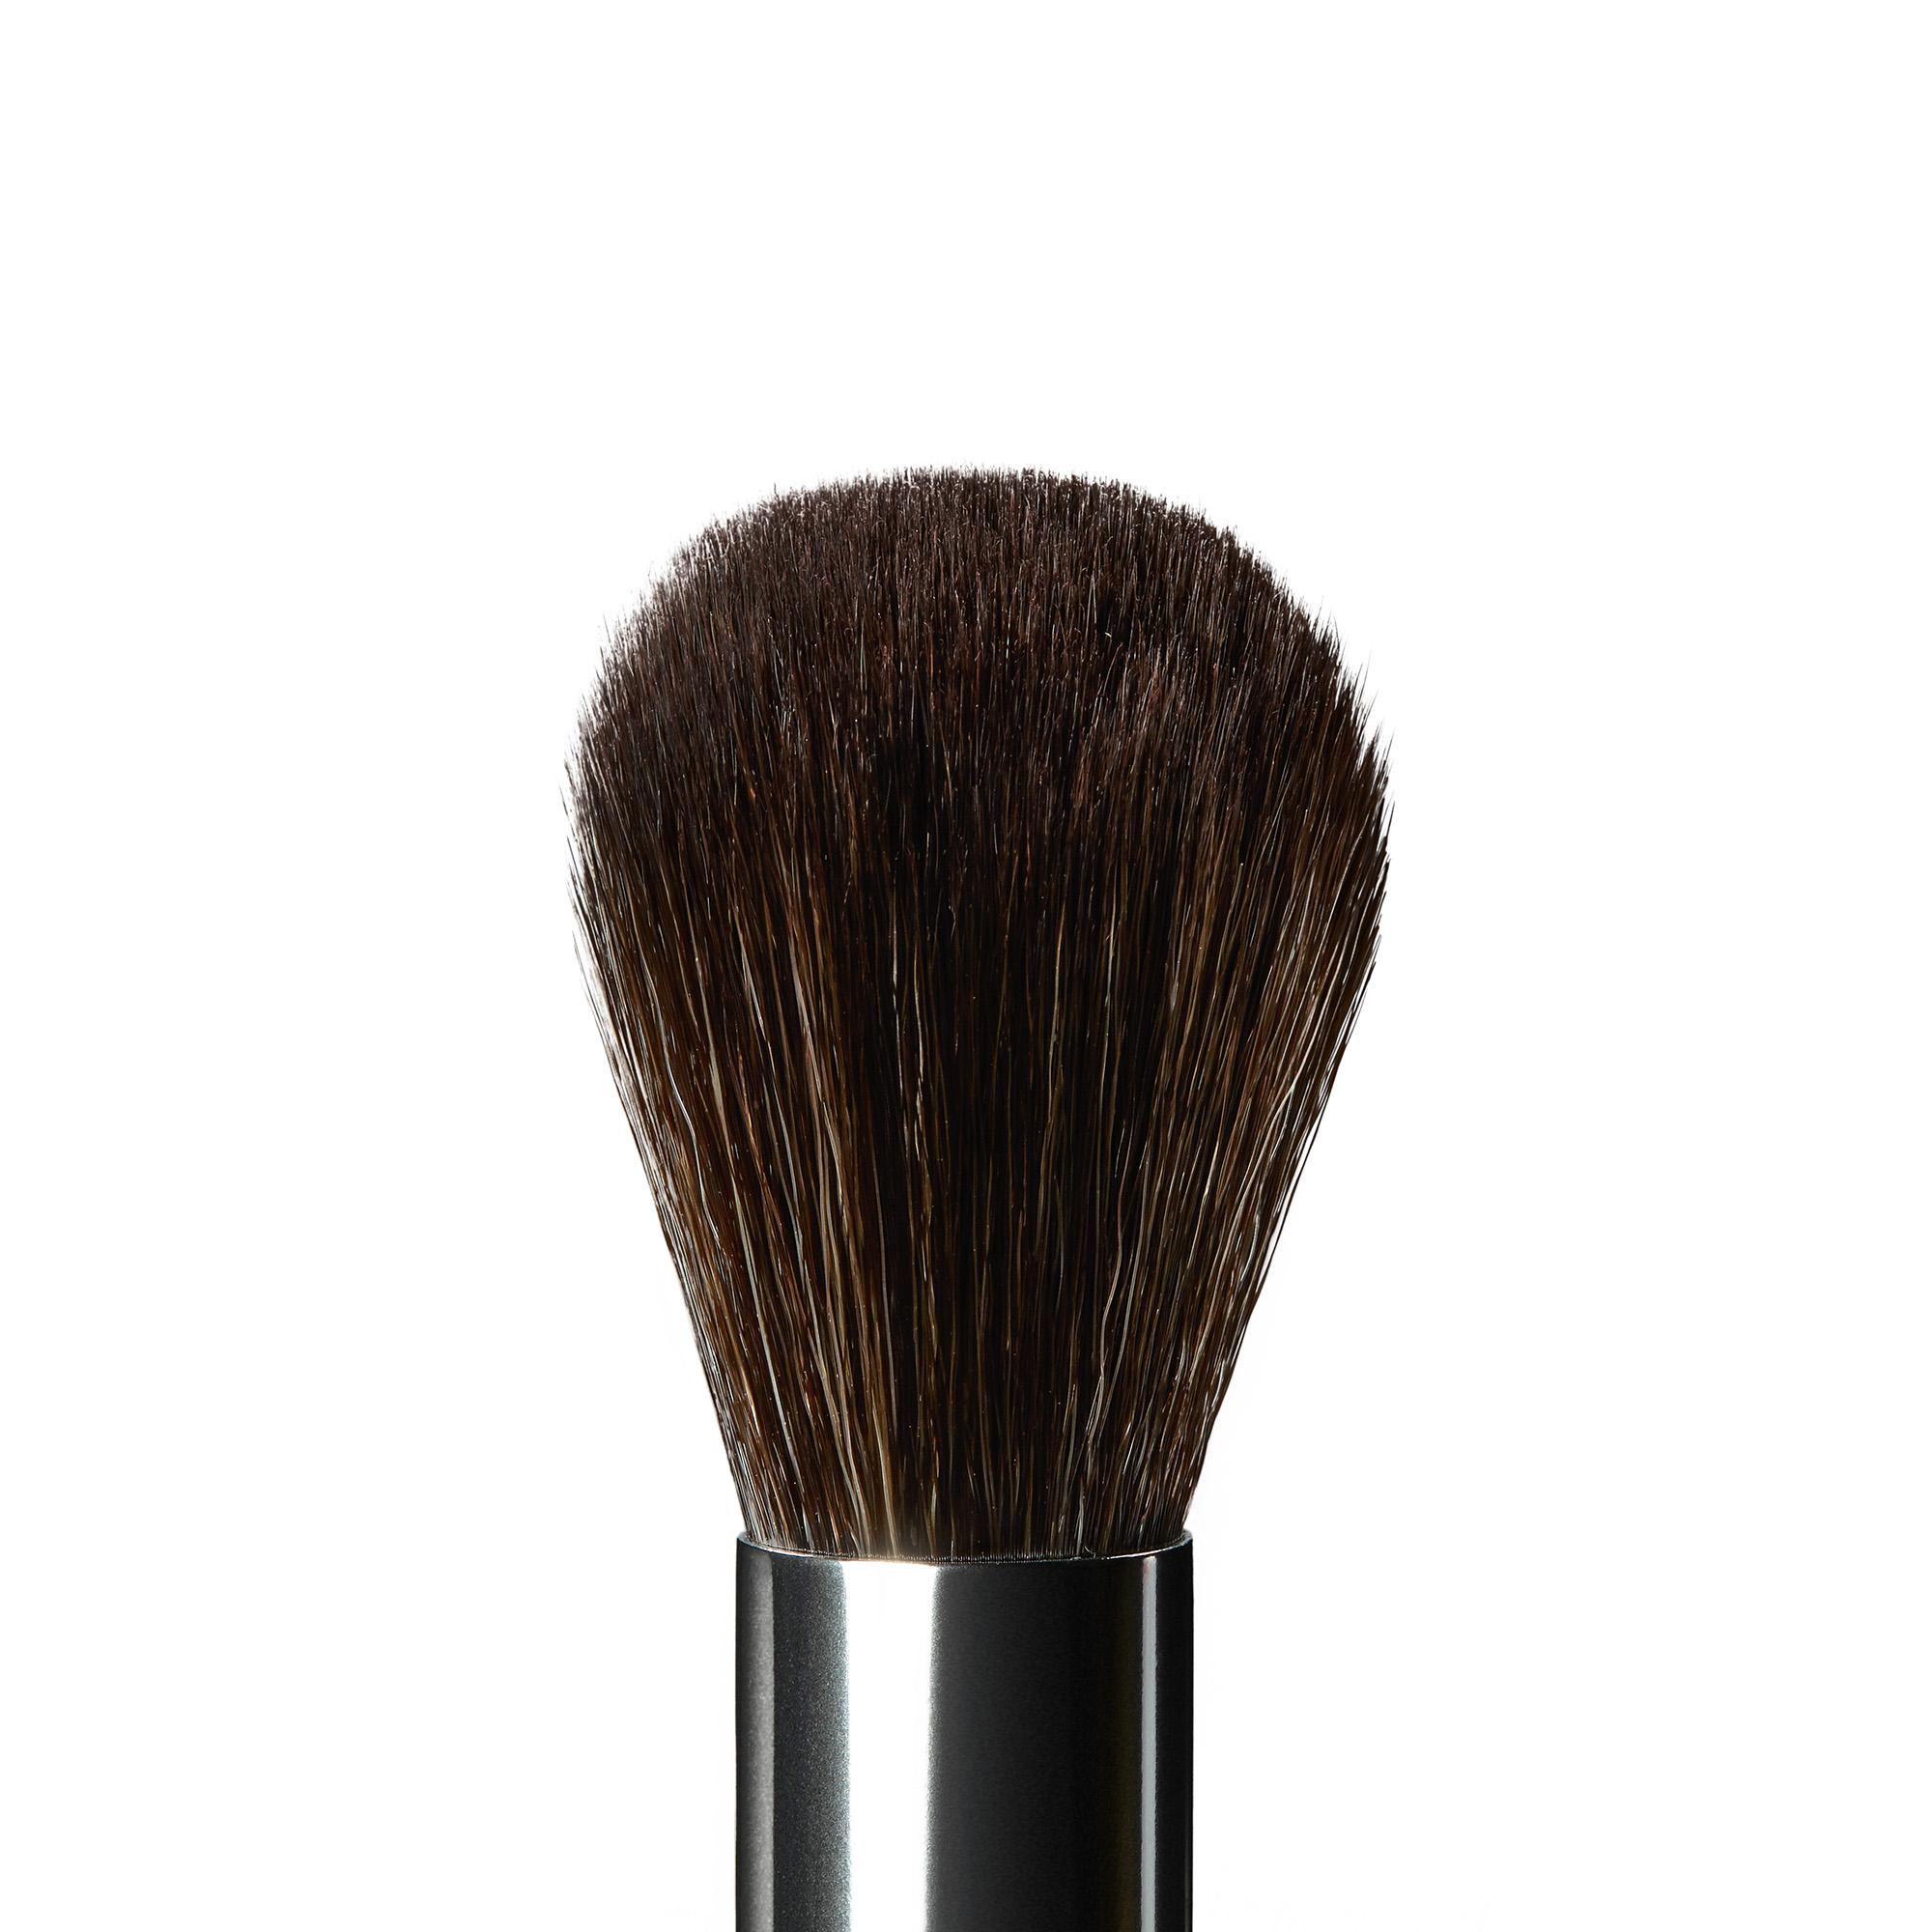 A7 Pro Brush - Large Blending Brush